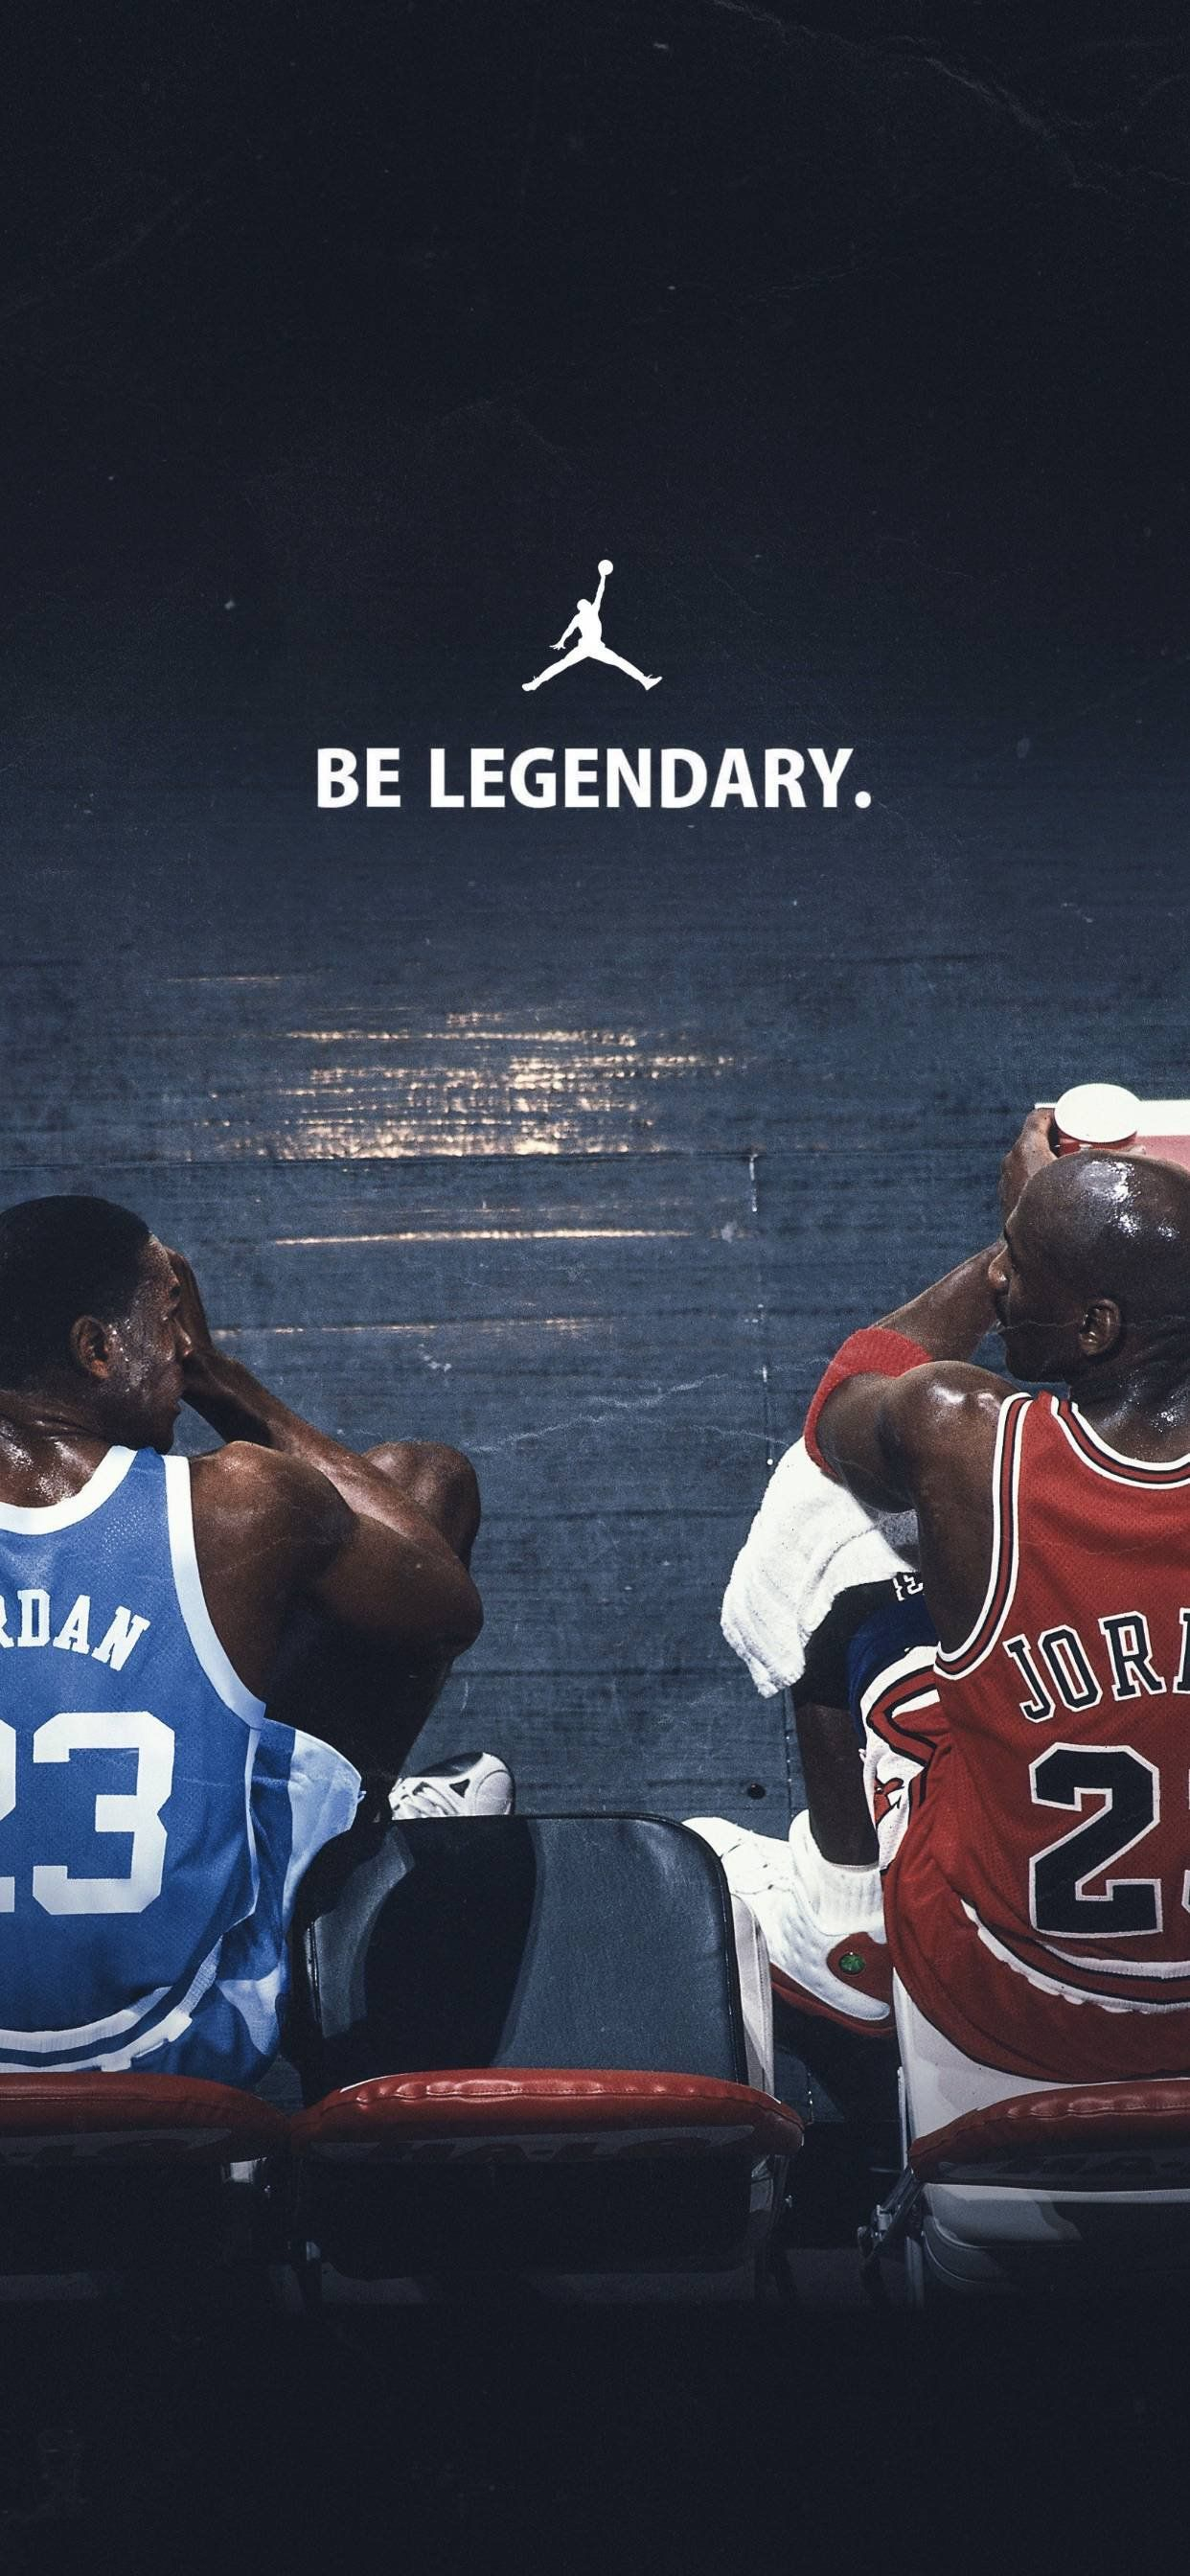 Jordan In 2020 Michael Jordan Basketball Basketball Photography